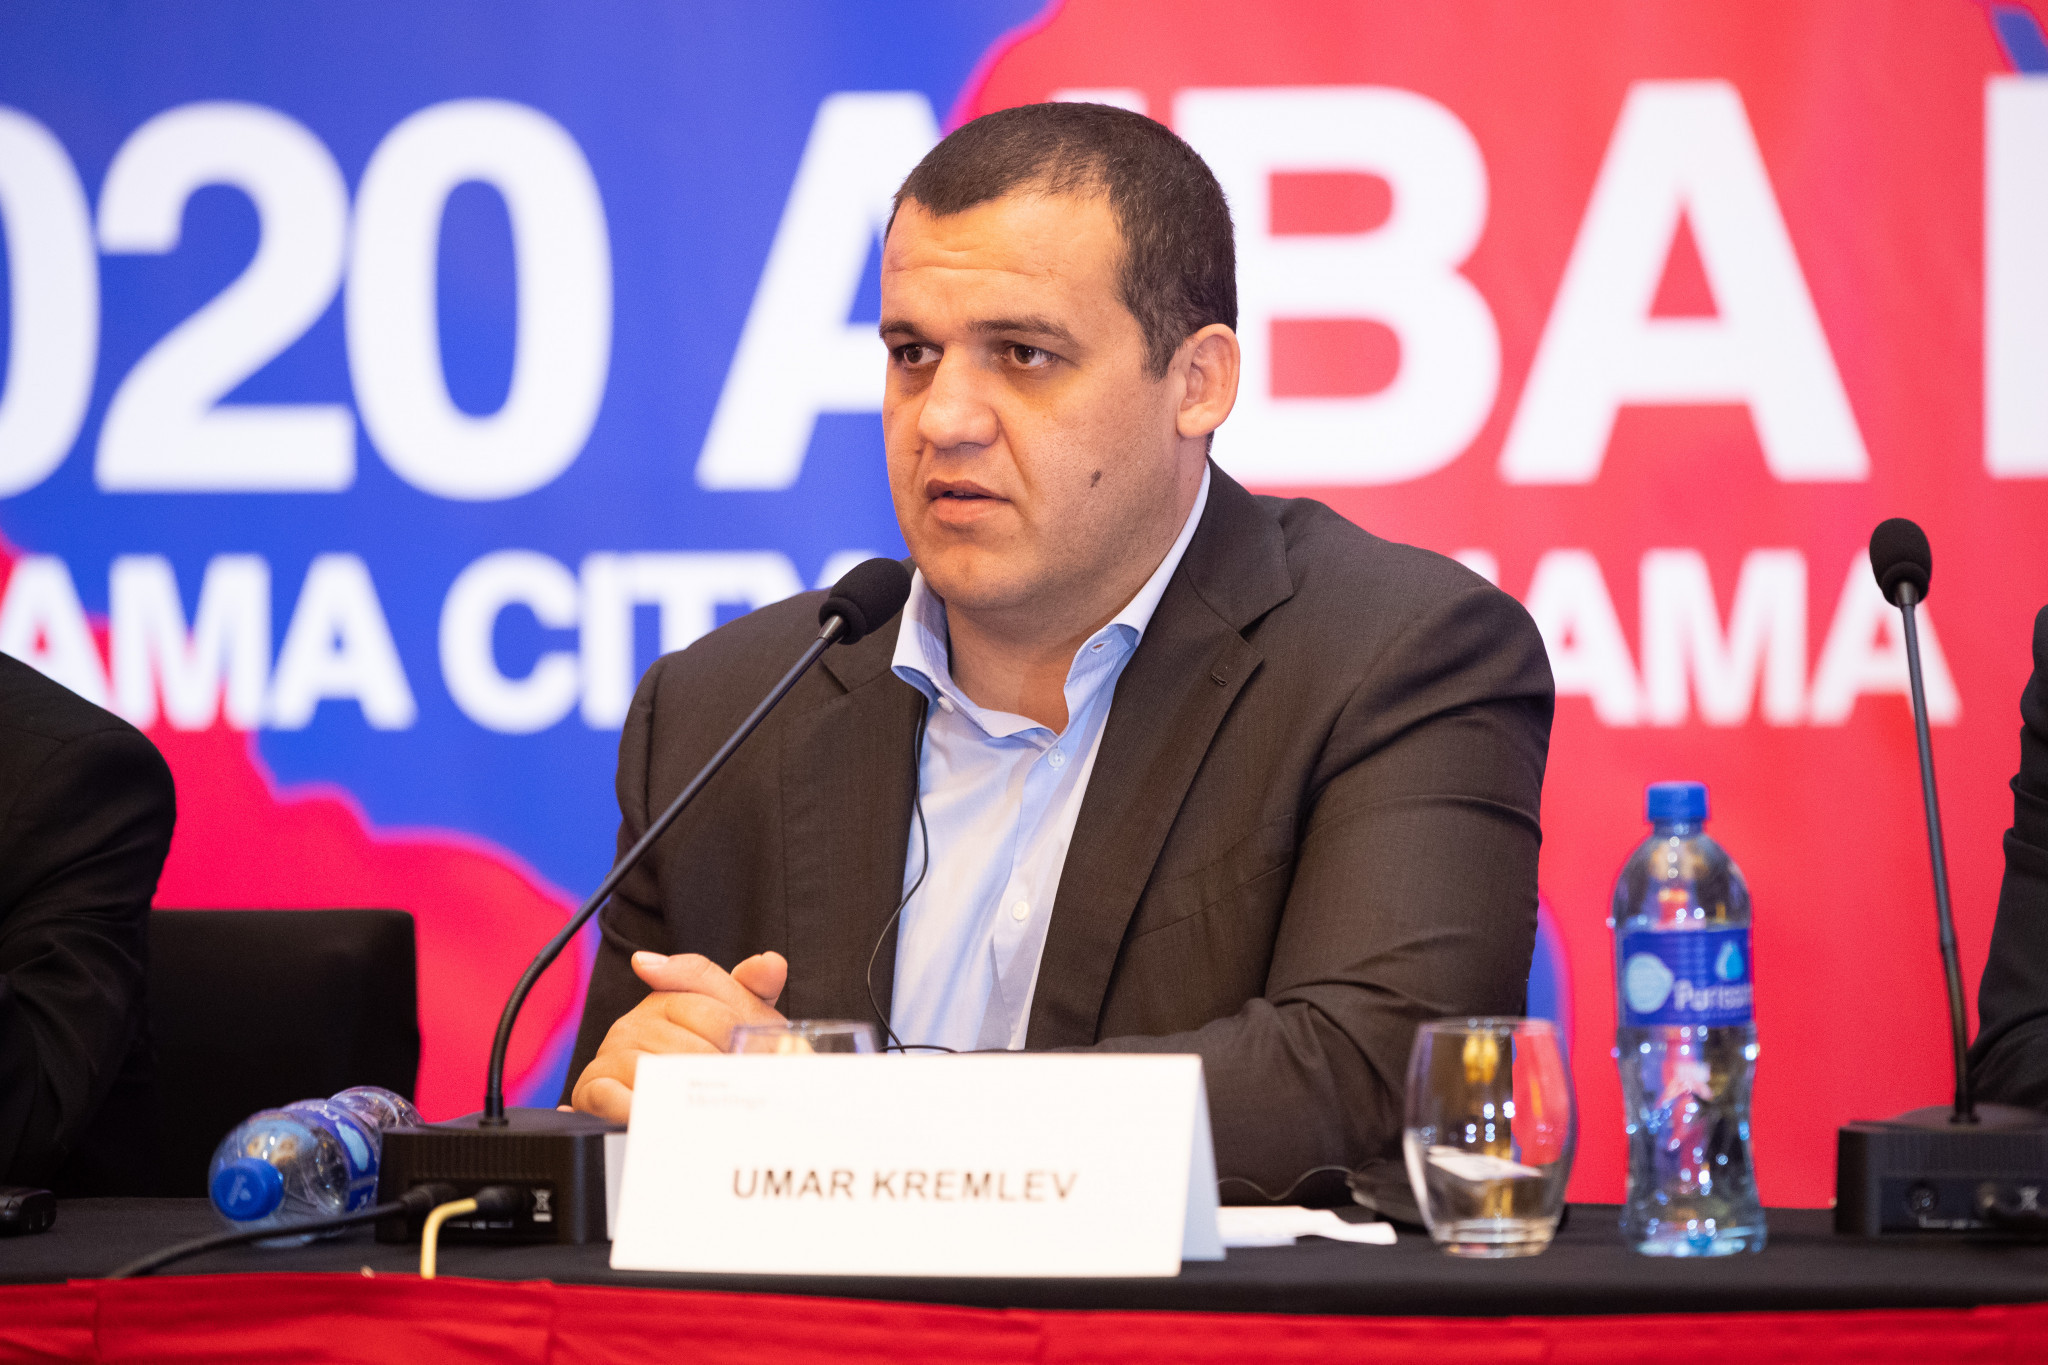 Umar Kremlev is one of five candidates running for AIBA President ©AIBA